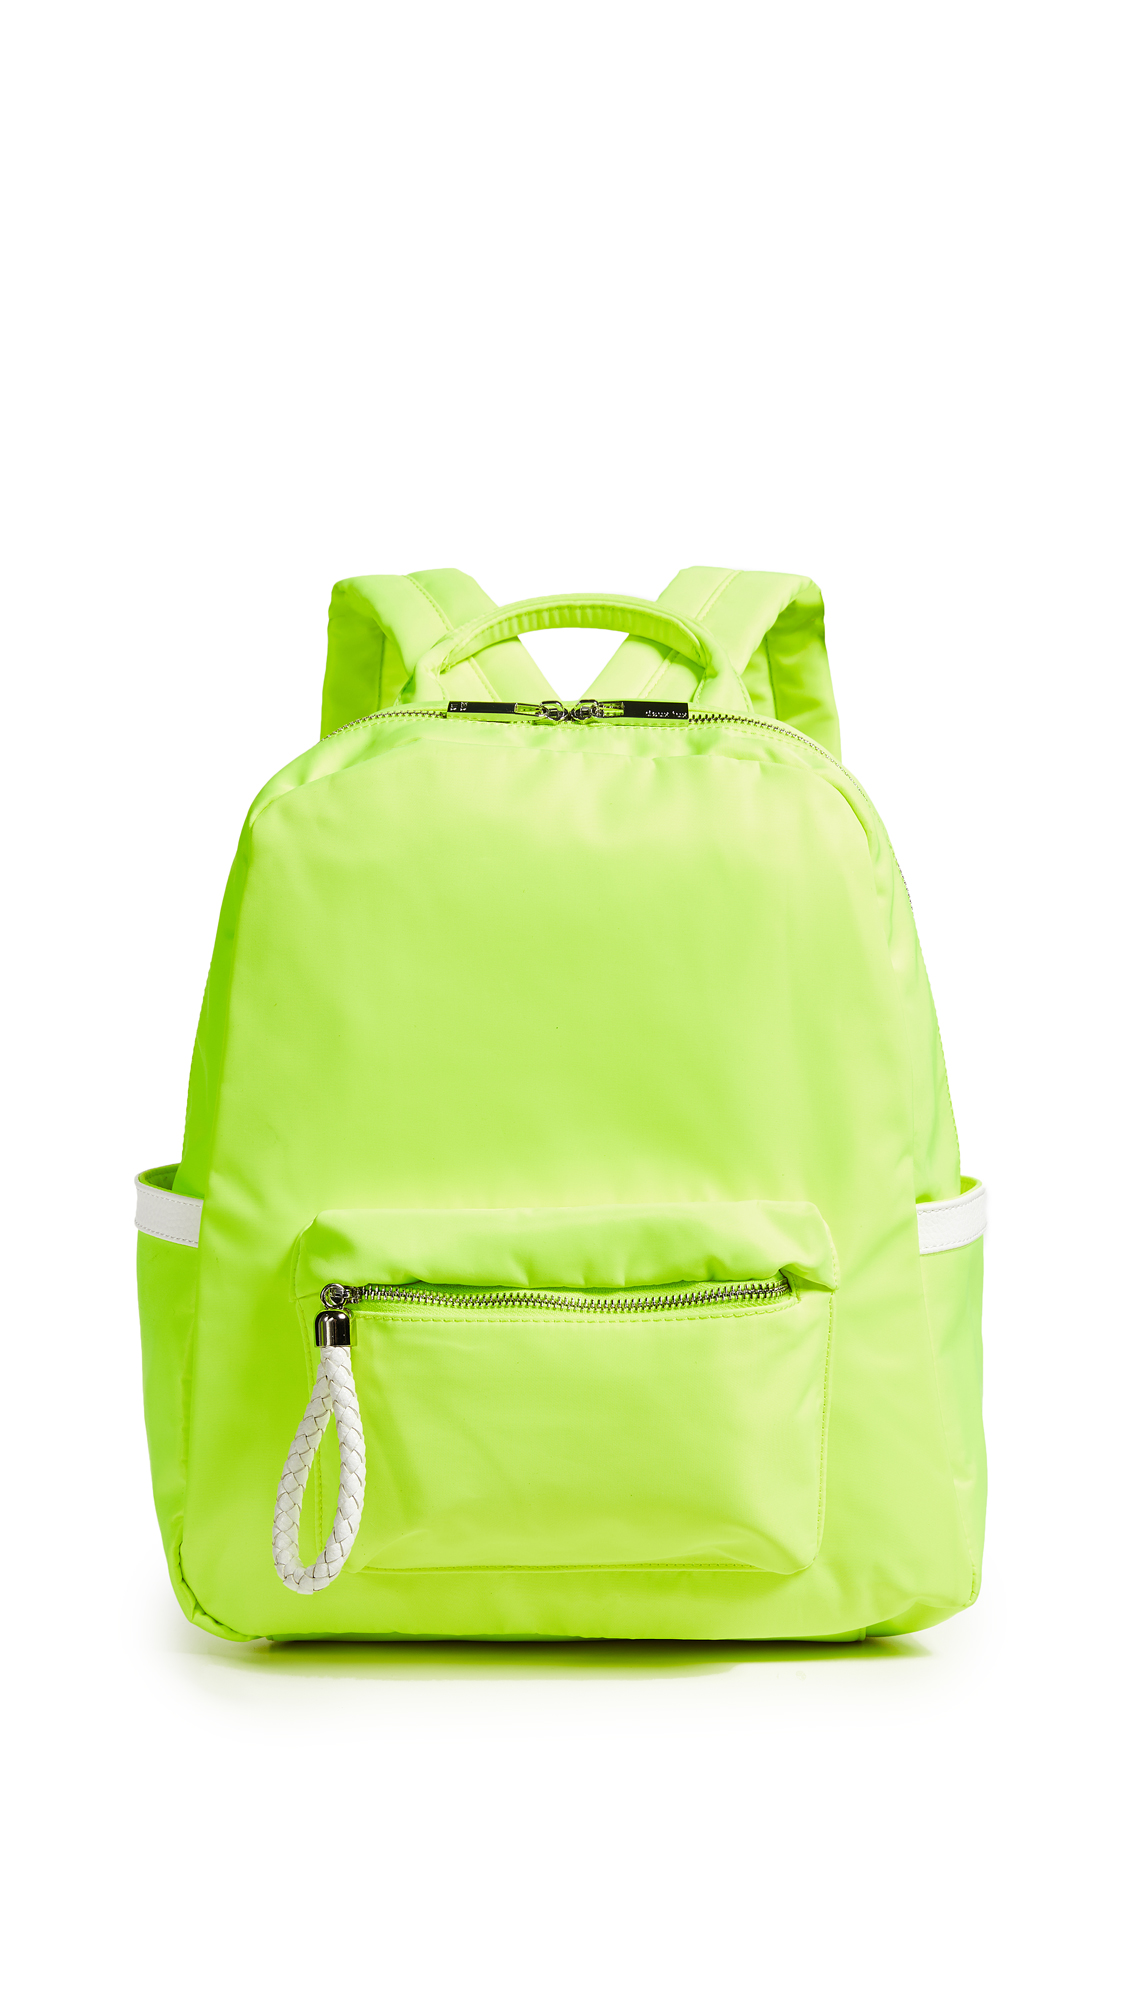 X SHOPBOP BACKPACK